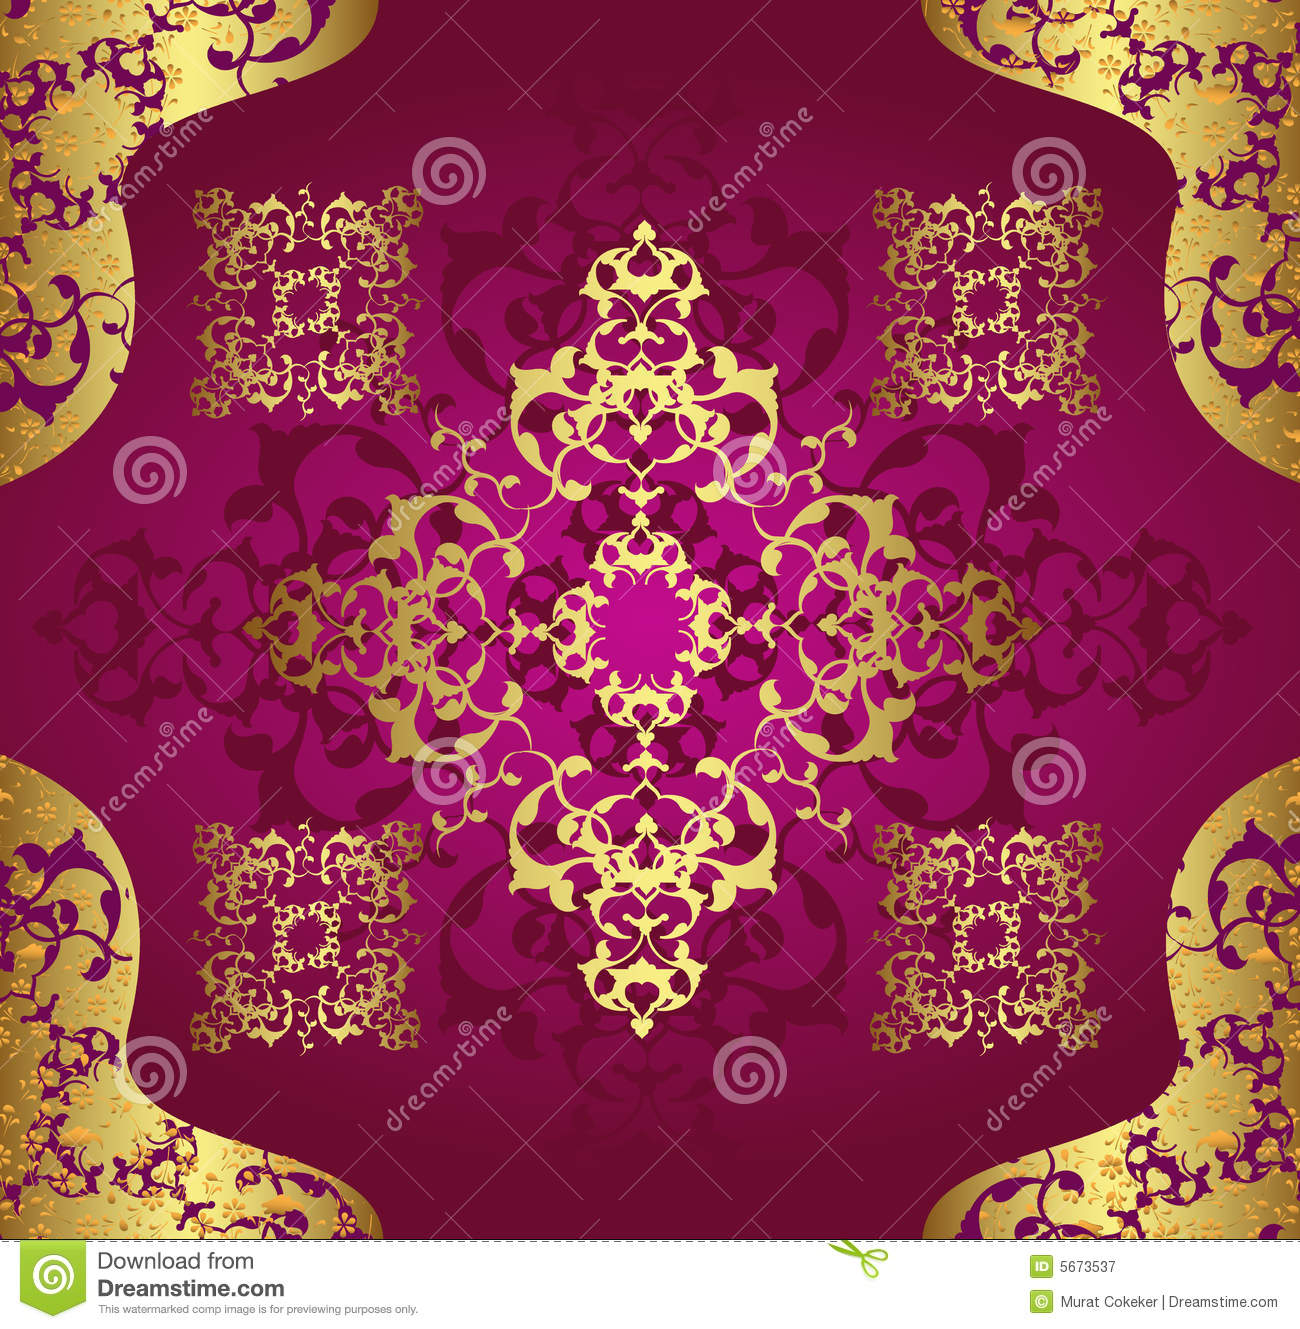 ottoman design royalty free stock photography image 5673537 ottoman design royalty free stock photography